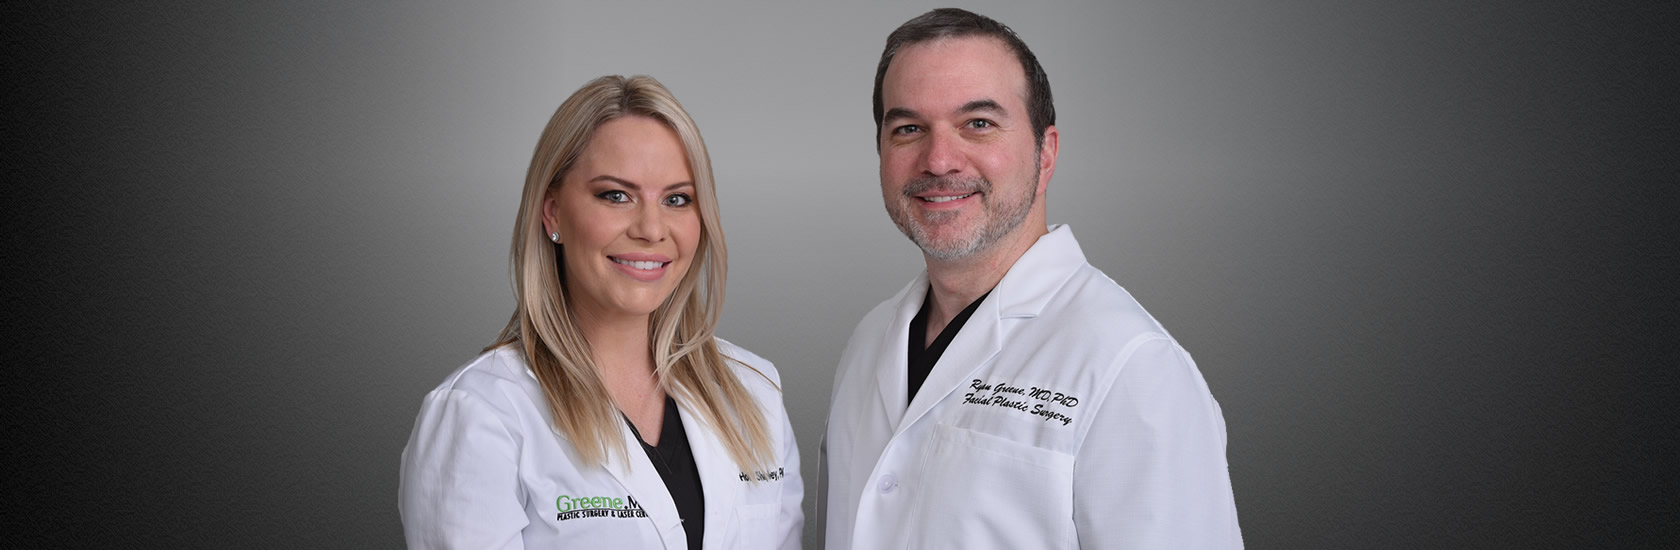 Expert Facial plastic Surgeon and Expert National Fillers and Botox Injector Weston, Fort Lauderdale and Miami, FL